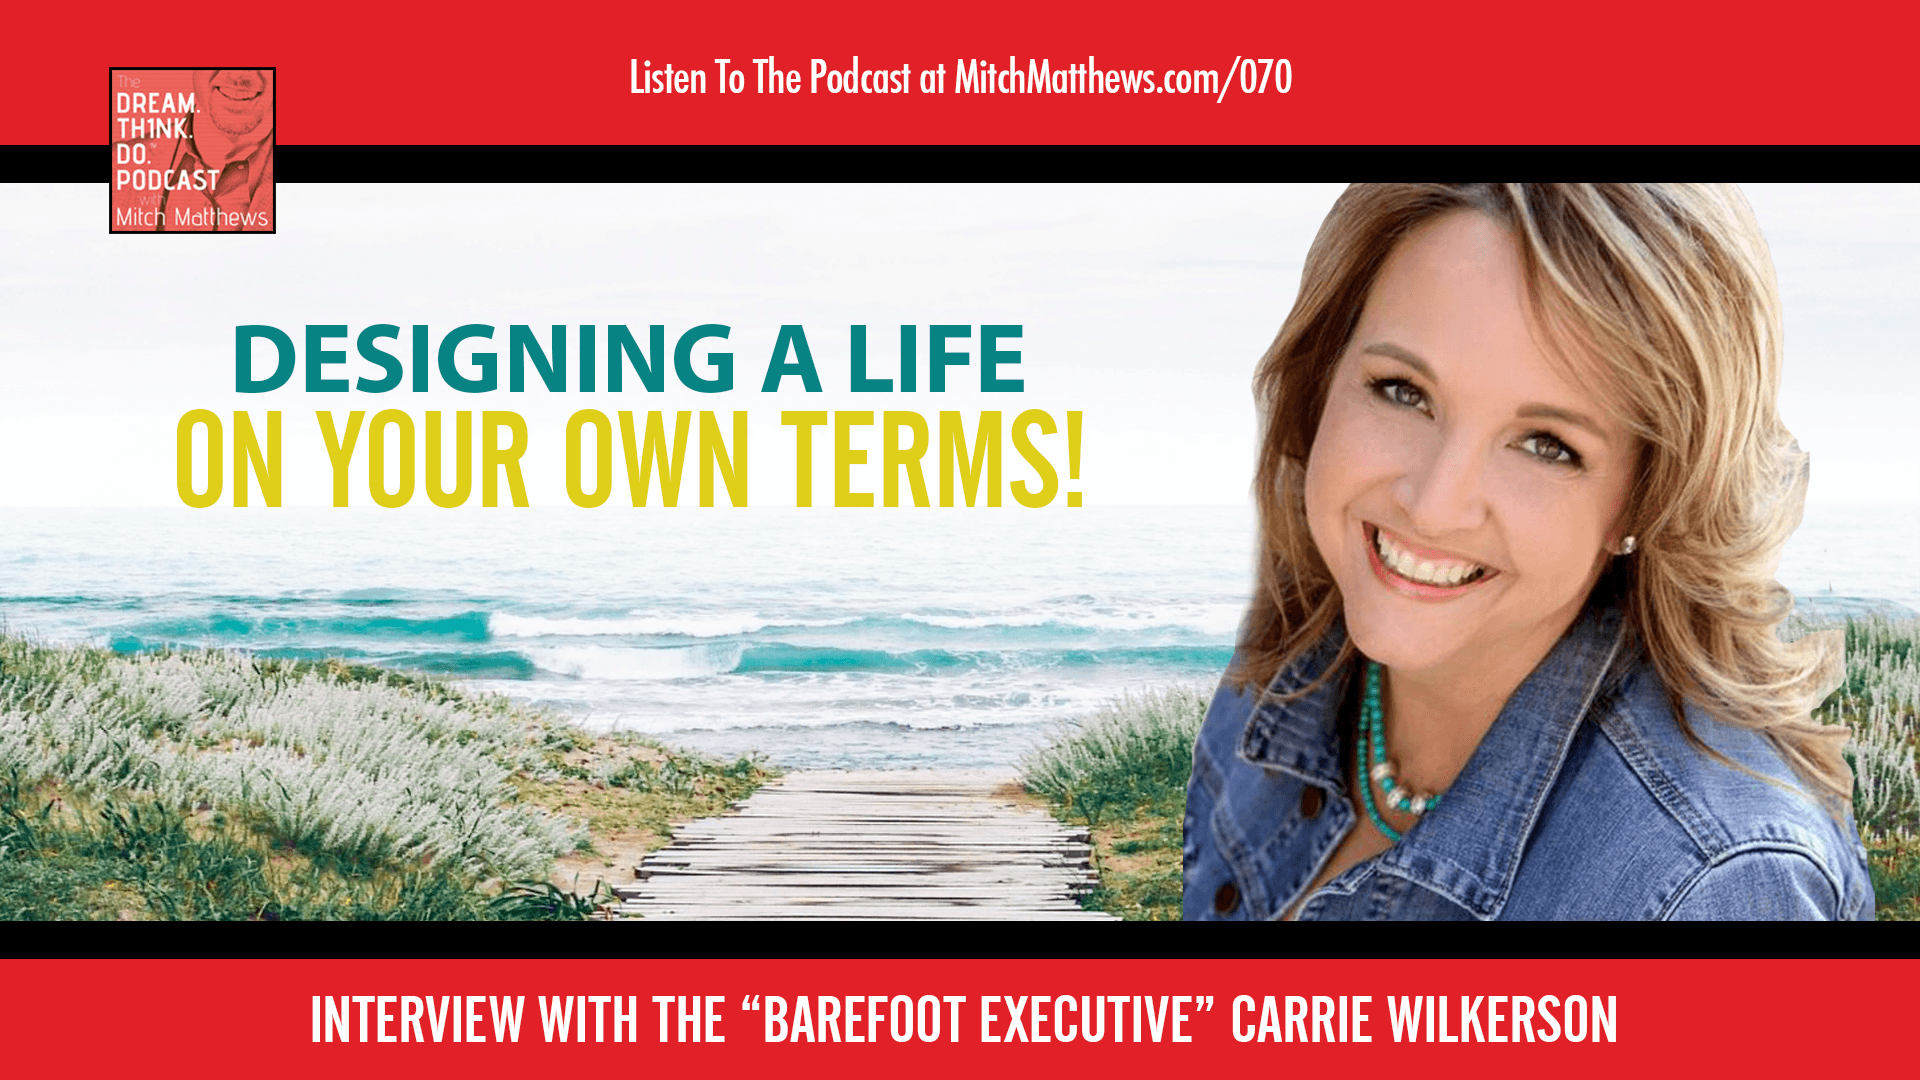 Carrie Wilkerson | Designing a life on your own terms!